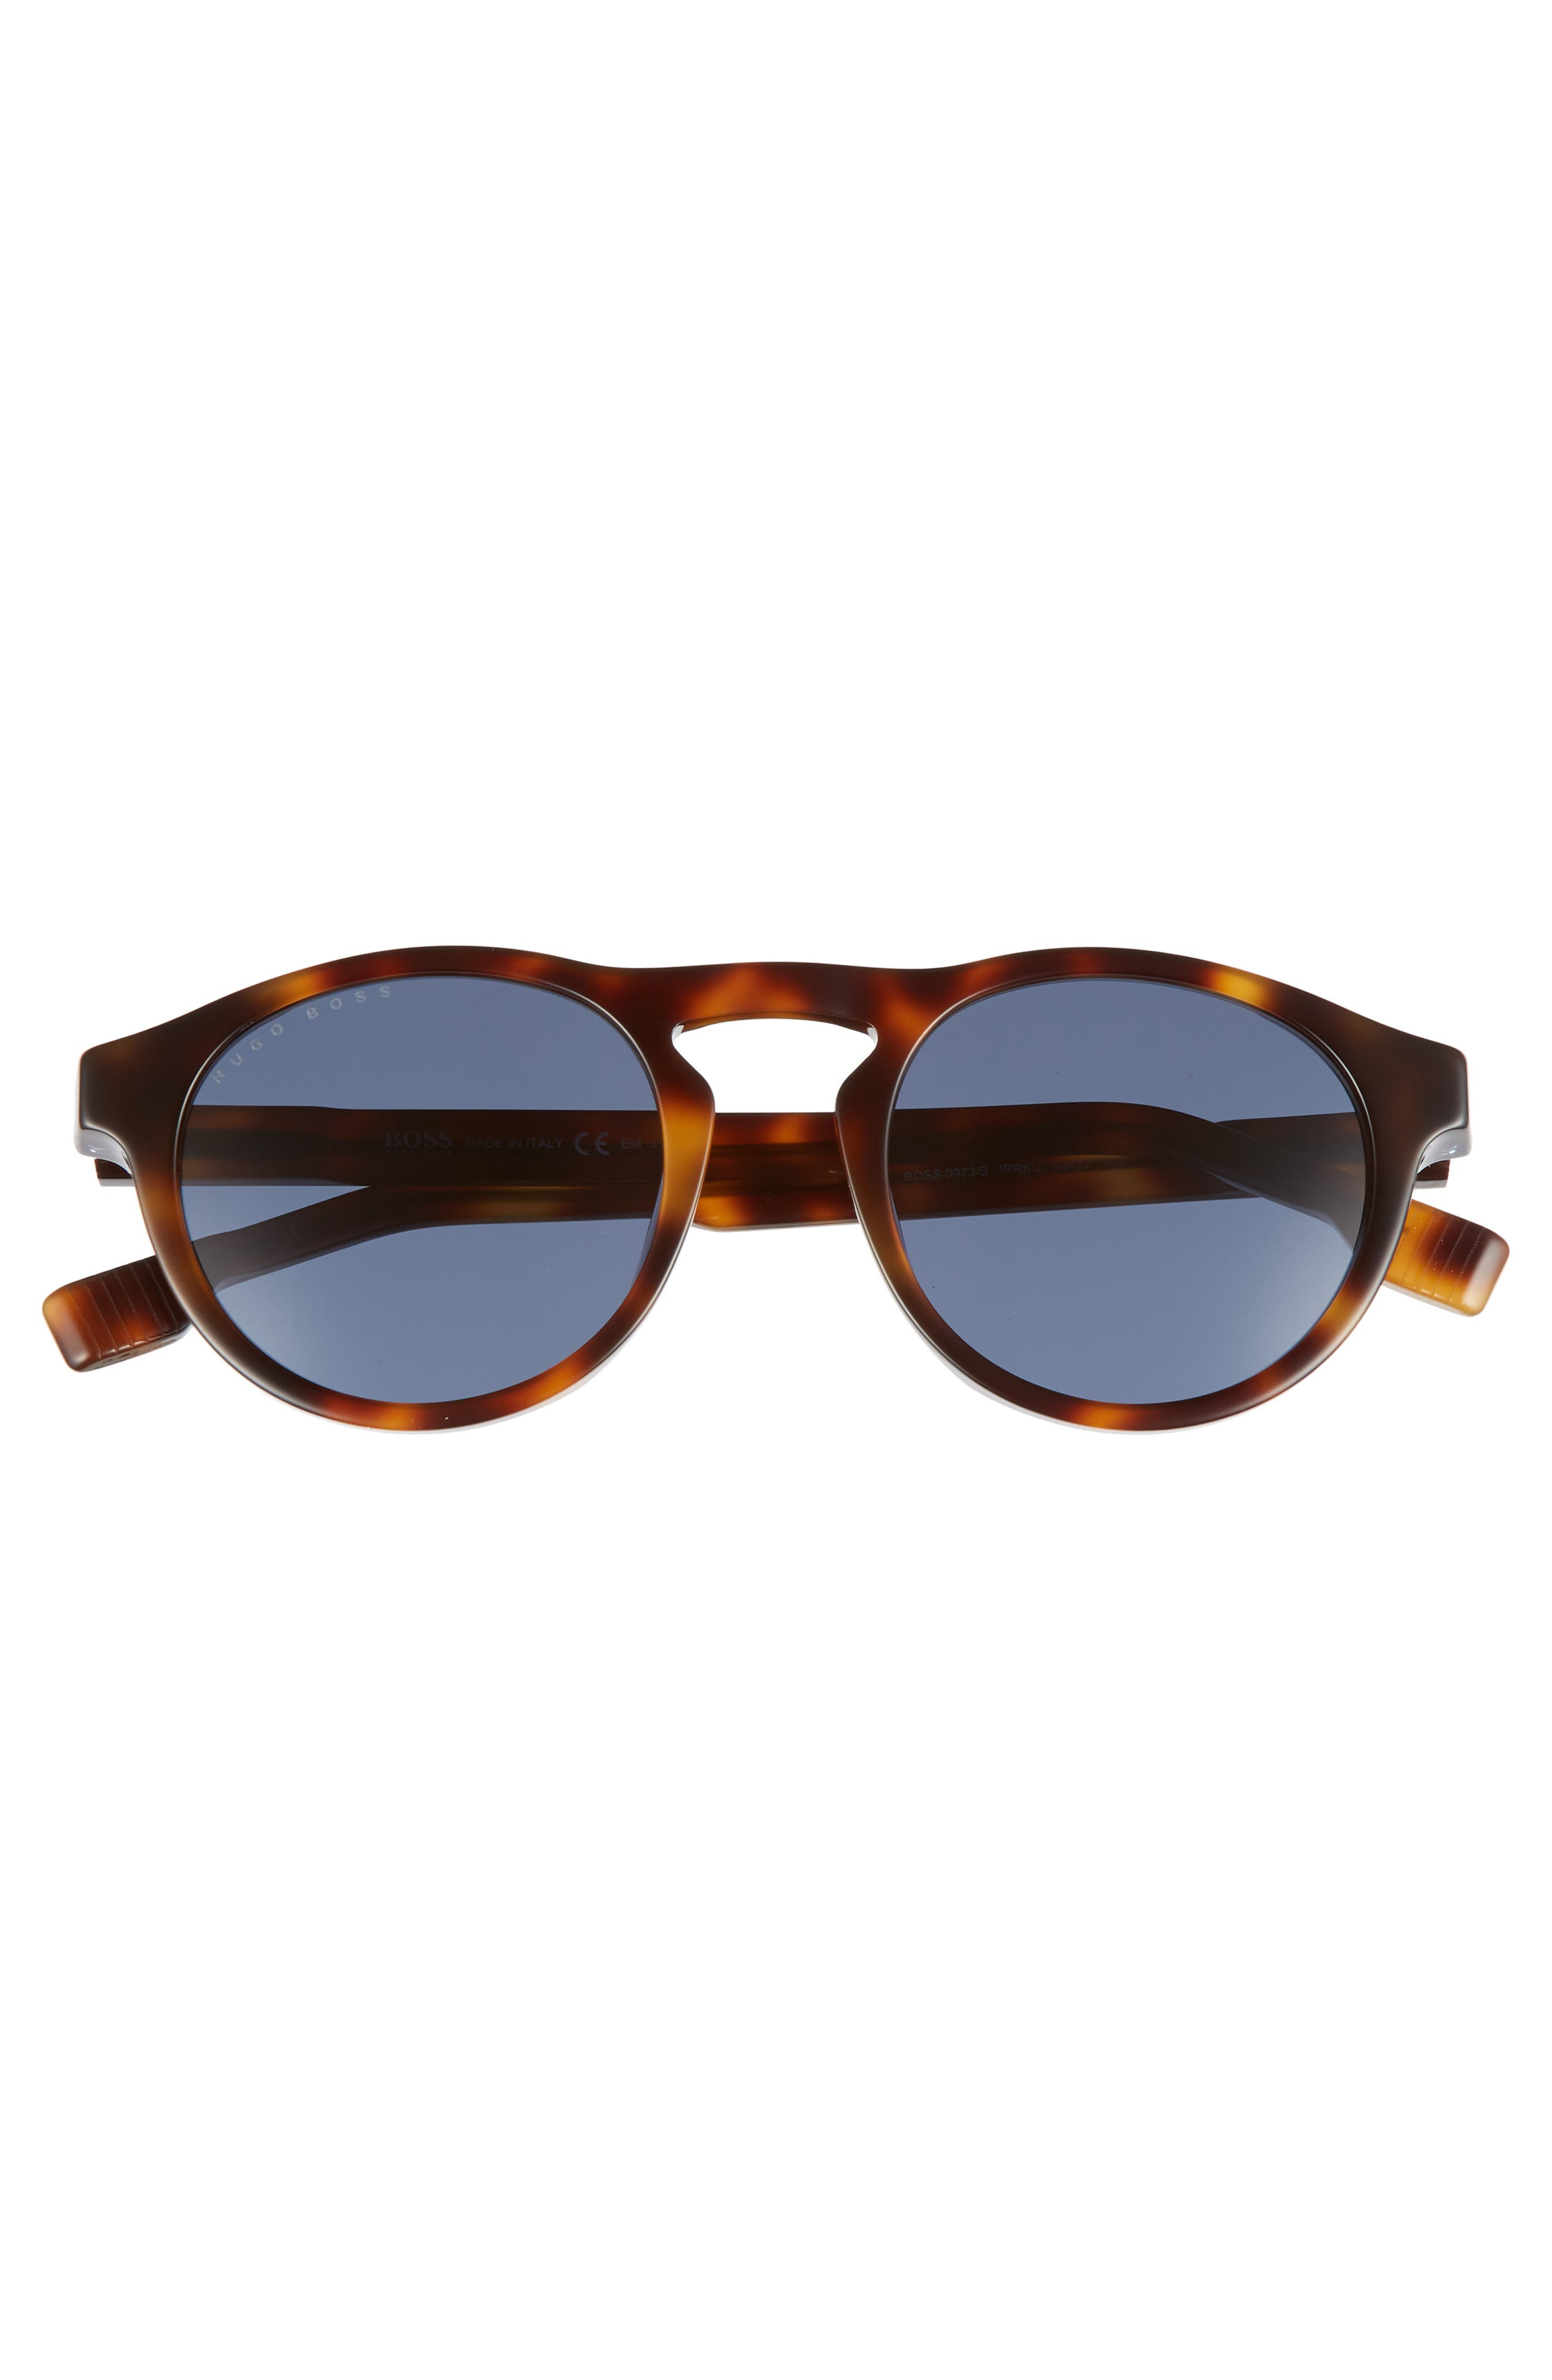 50mm Polarized Round Sunglasses,                             Alternate thumbnail 2, color,                             HAVANA/ BLUE